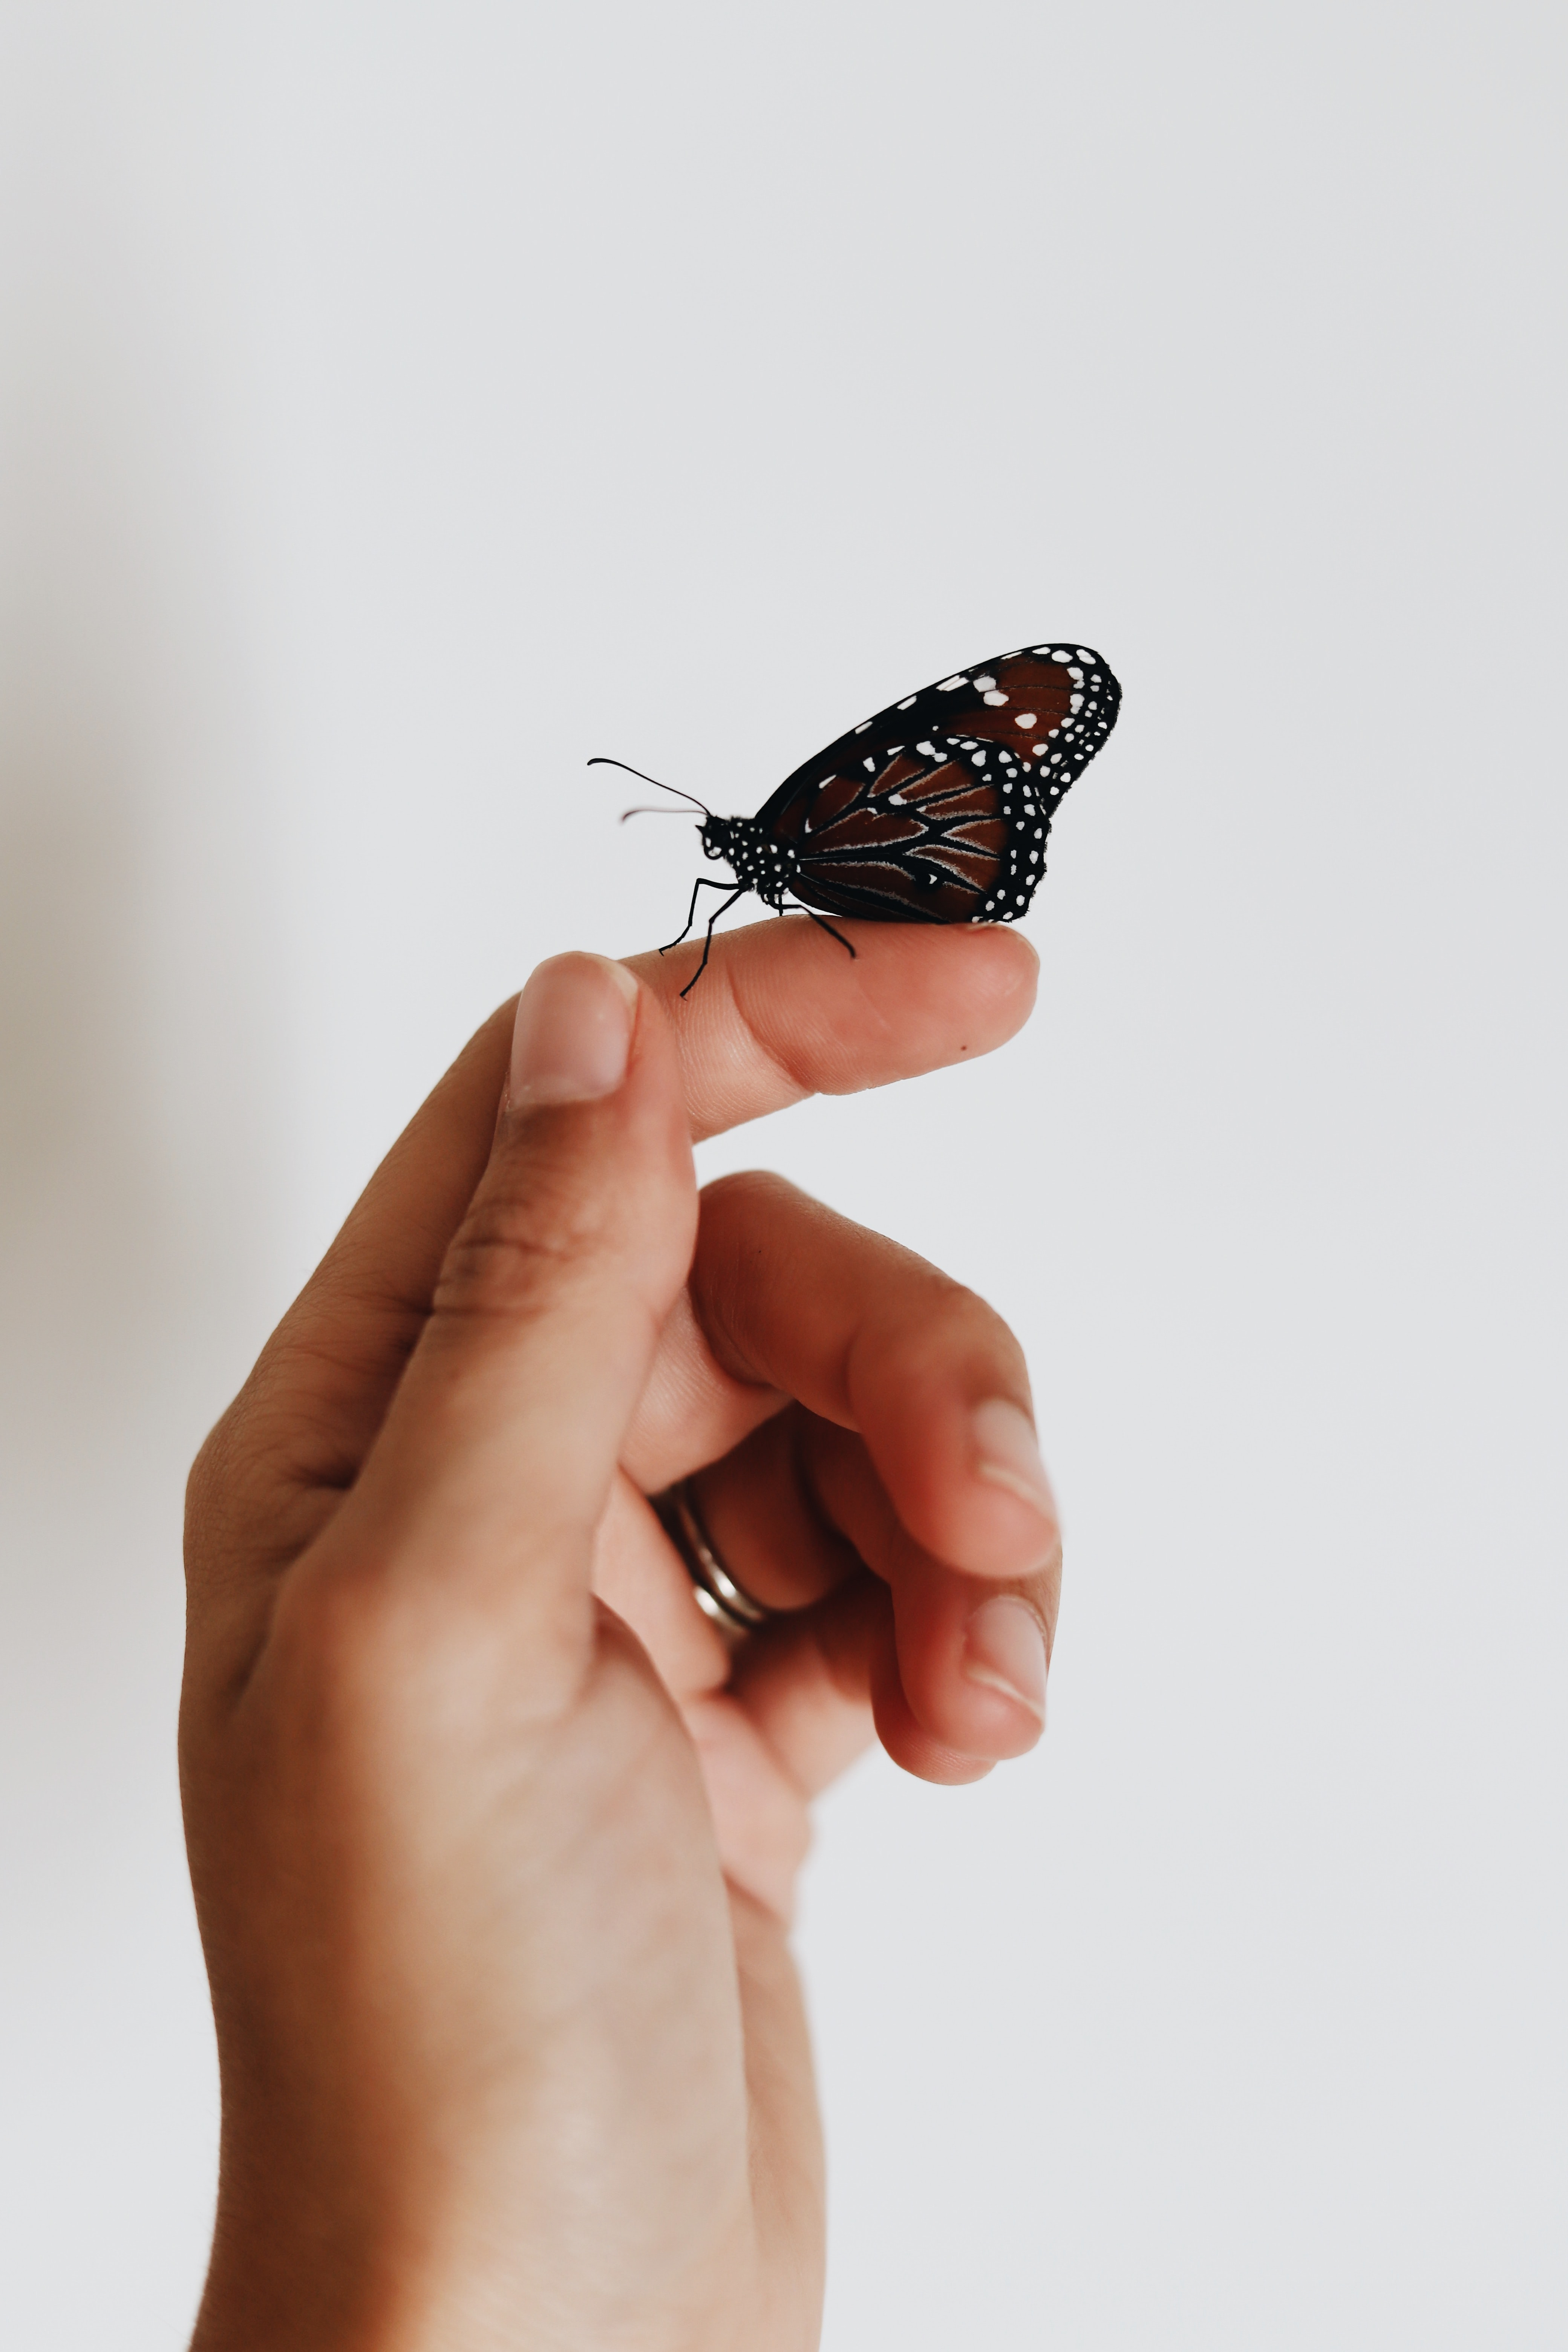 brown and black butterfly on person index finger